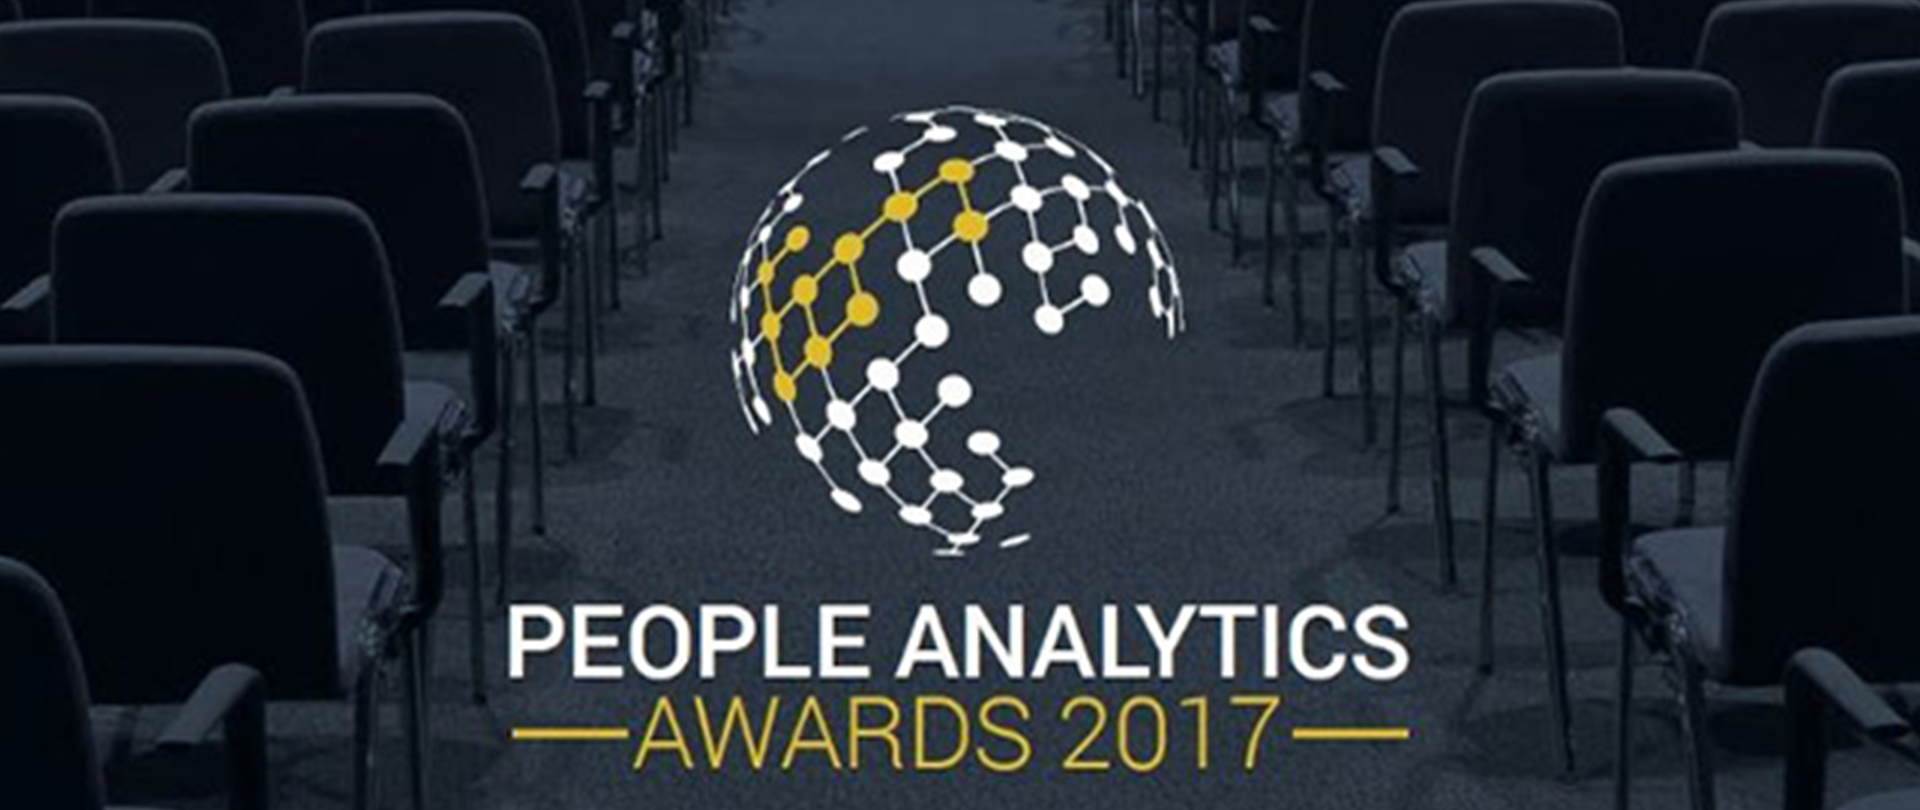 MetrixAnalytics people analytics award